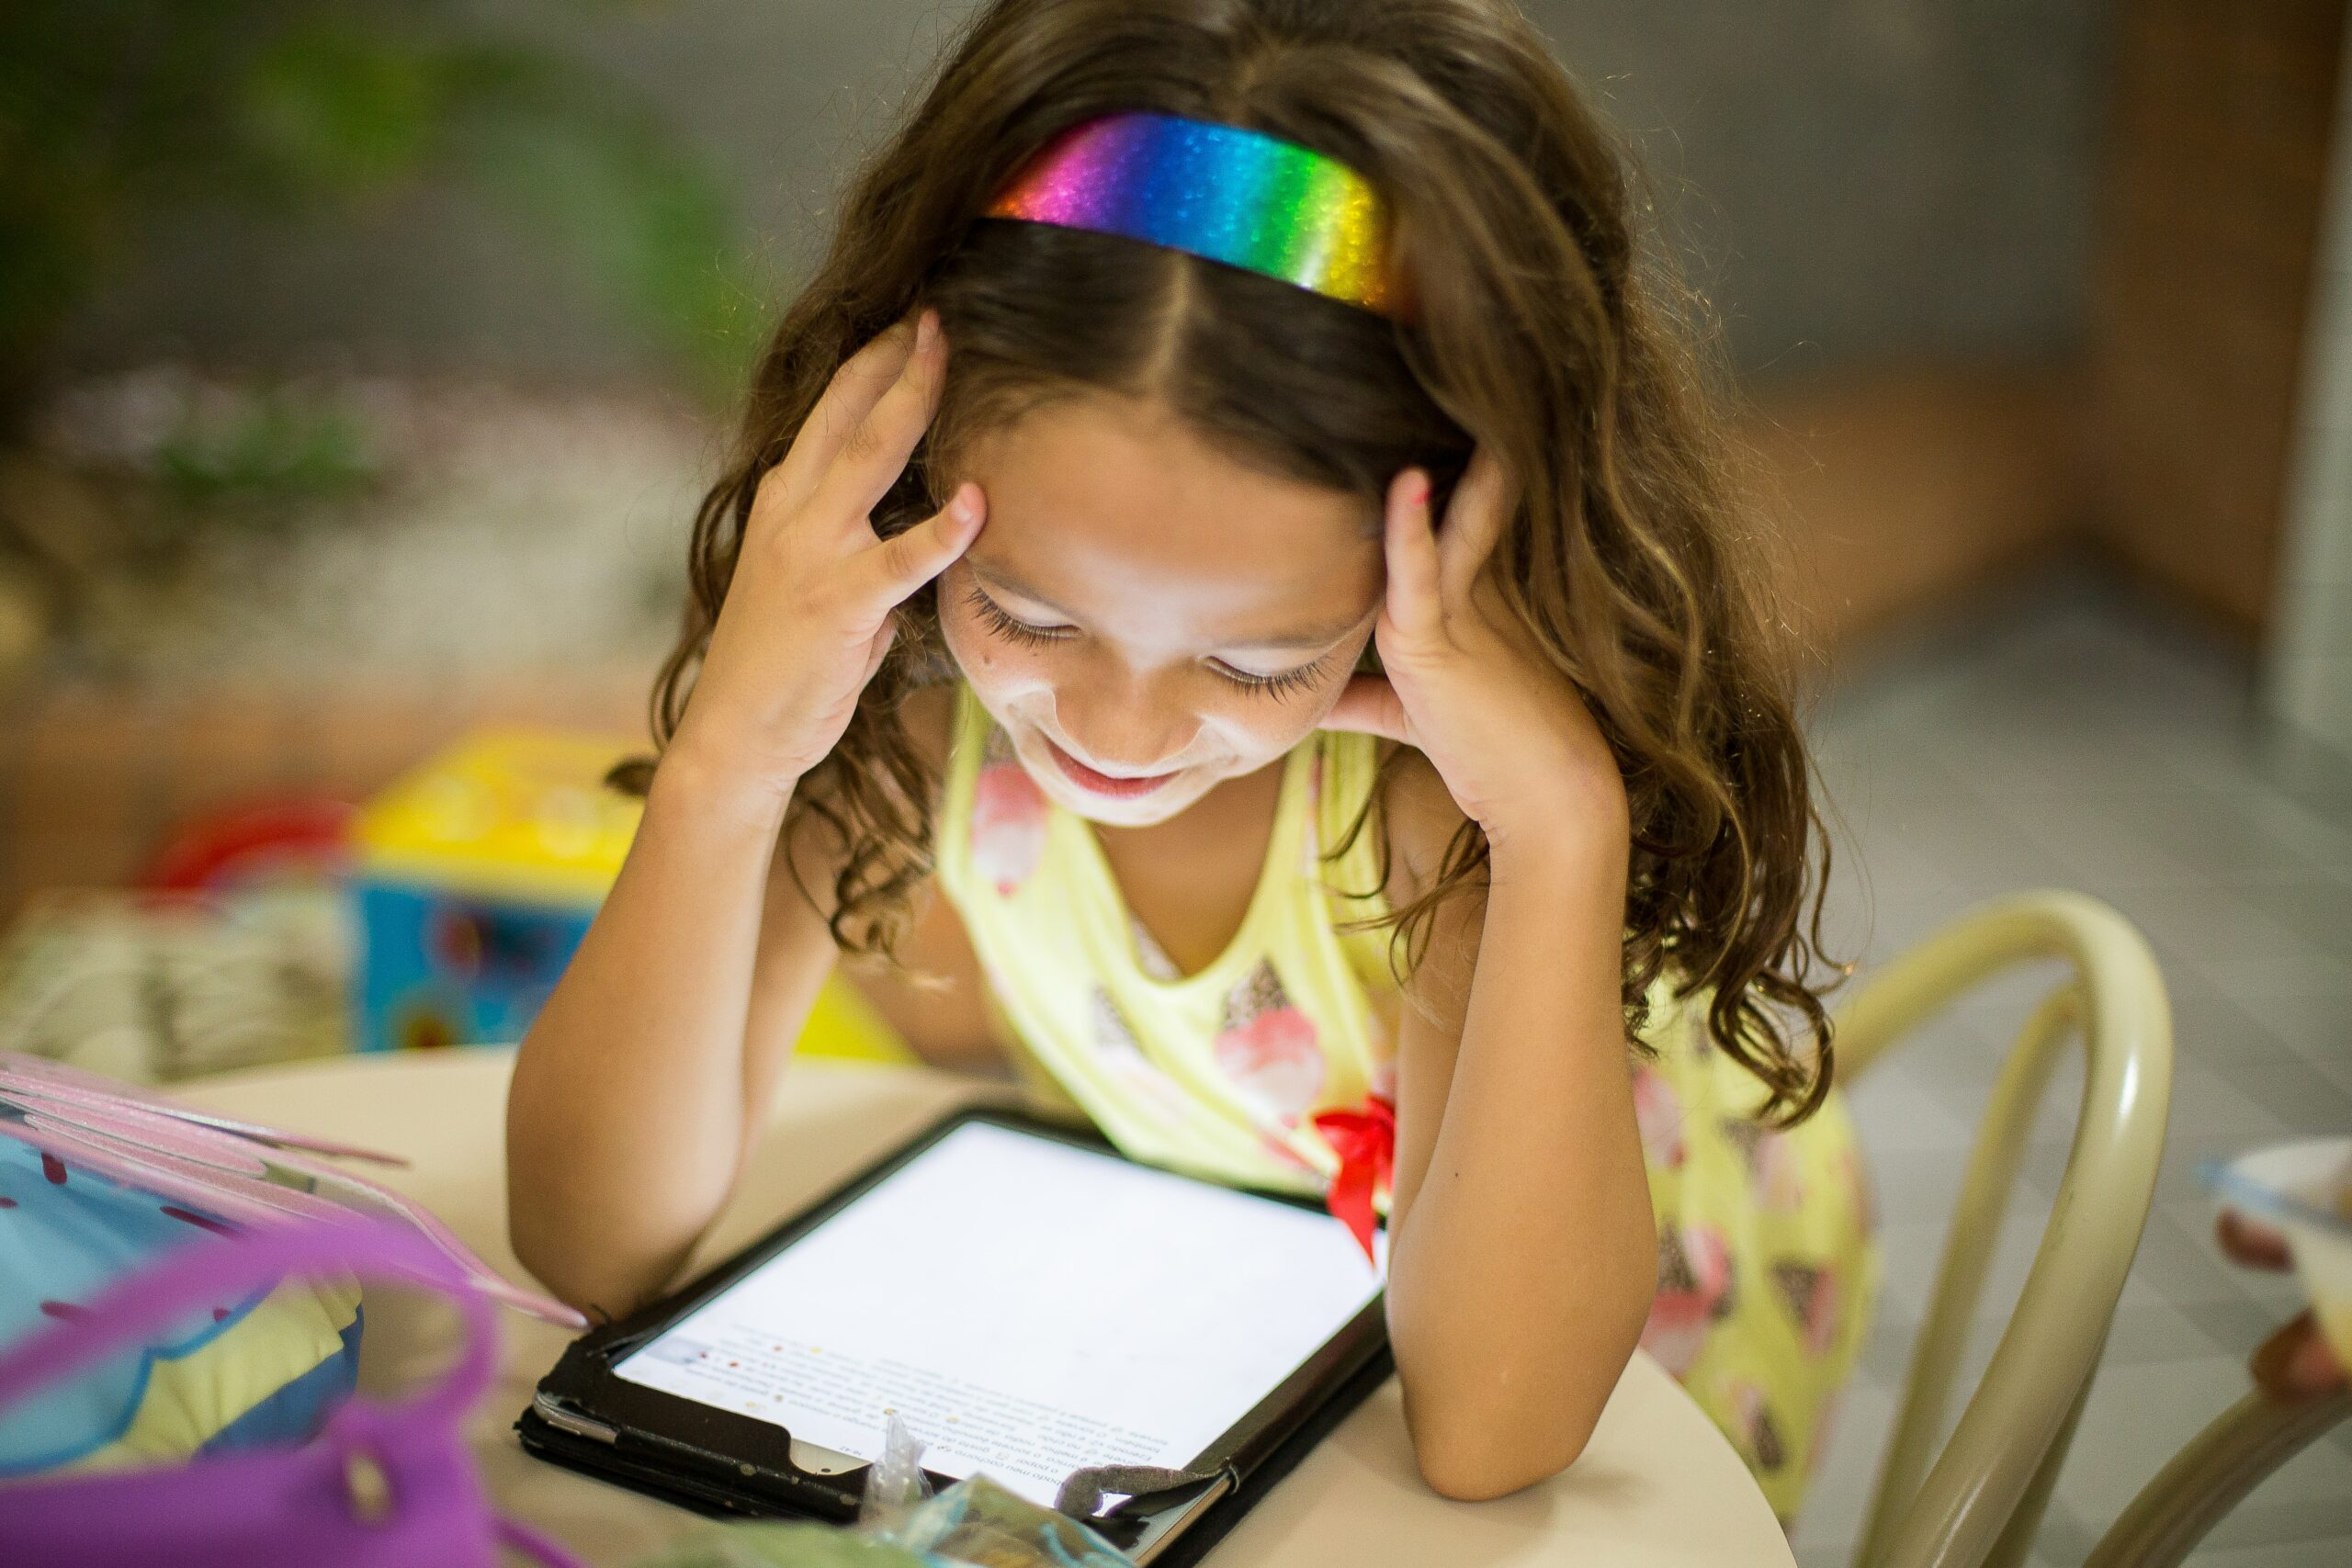 a little girl playing with an app on her iPad